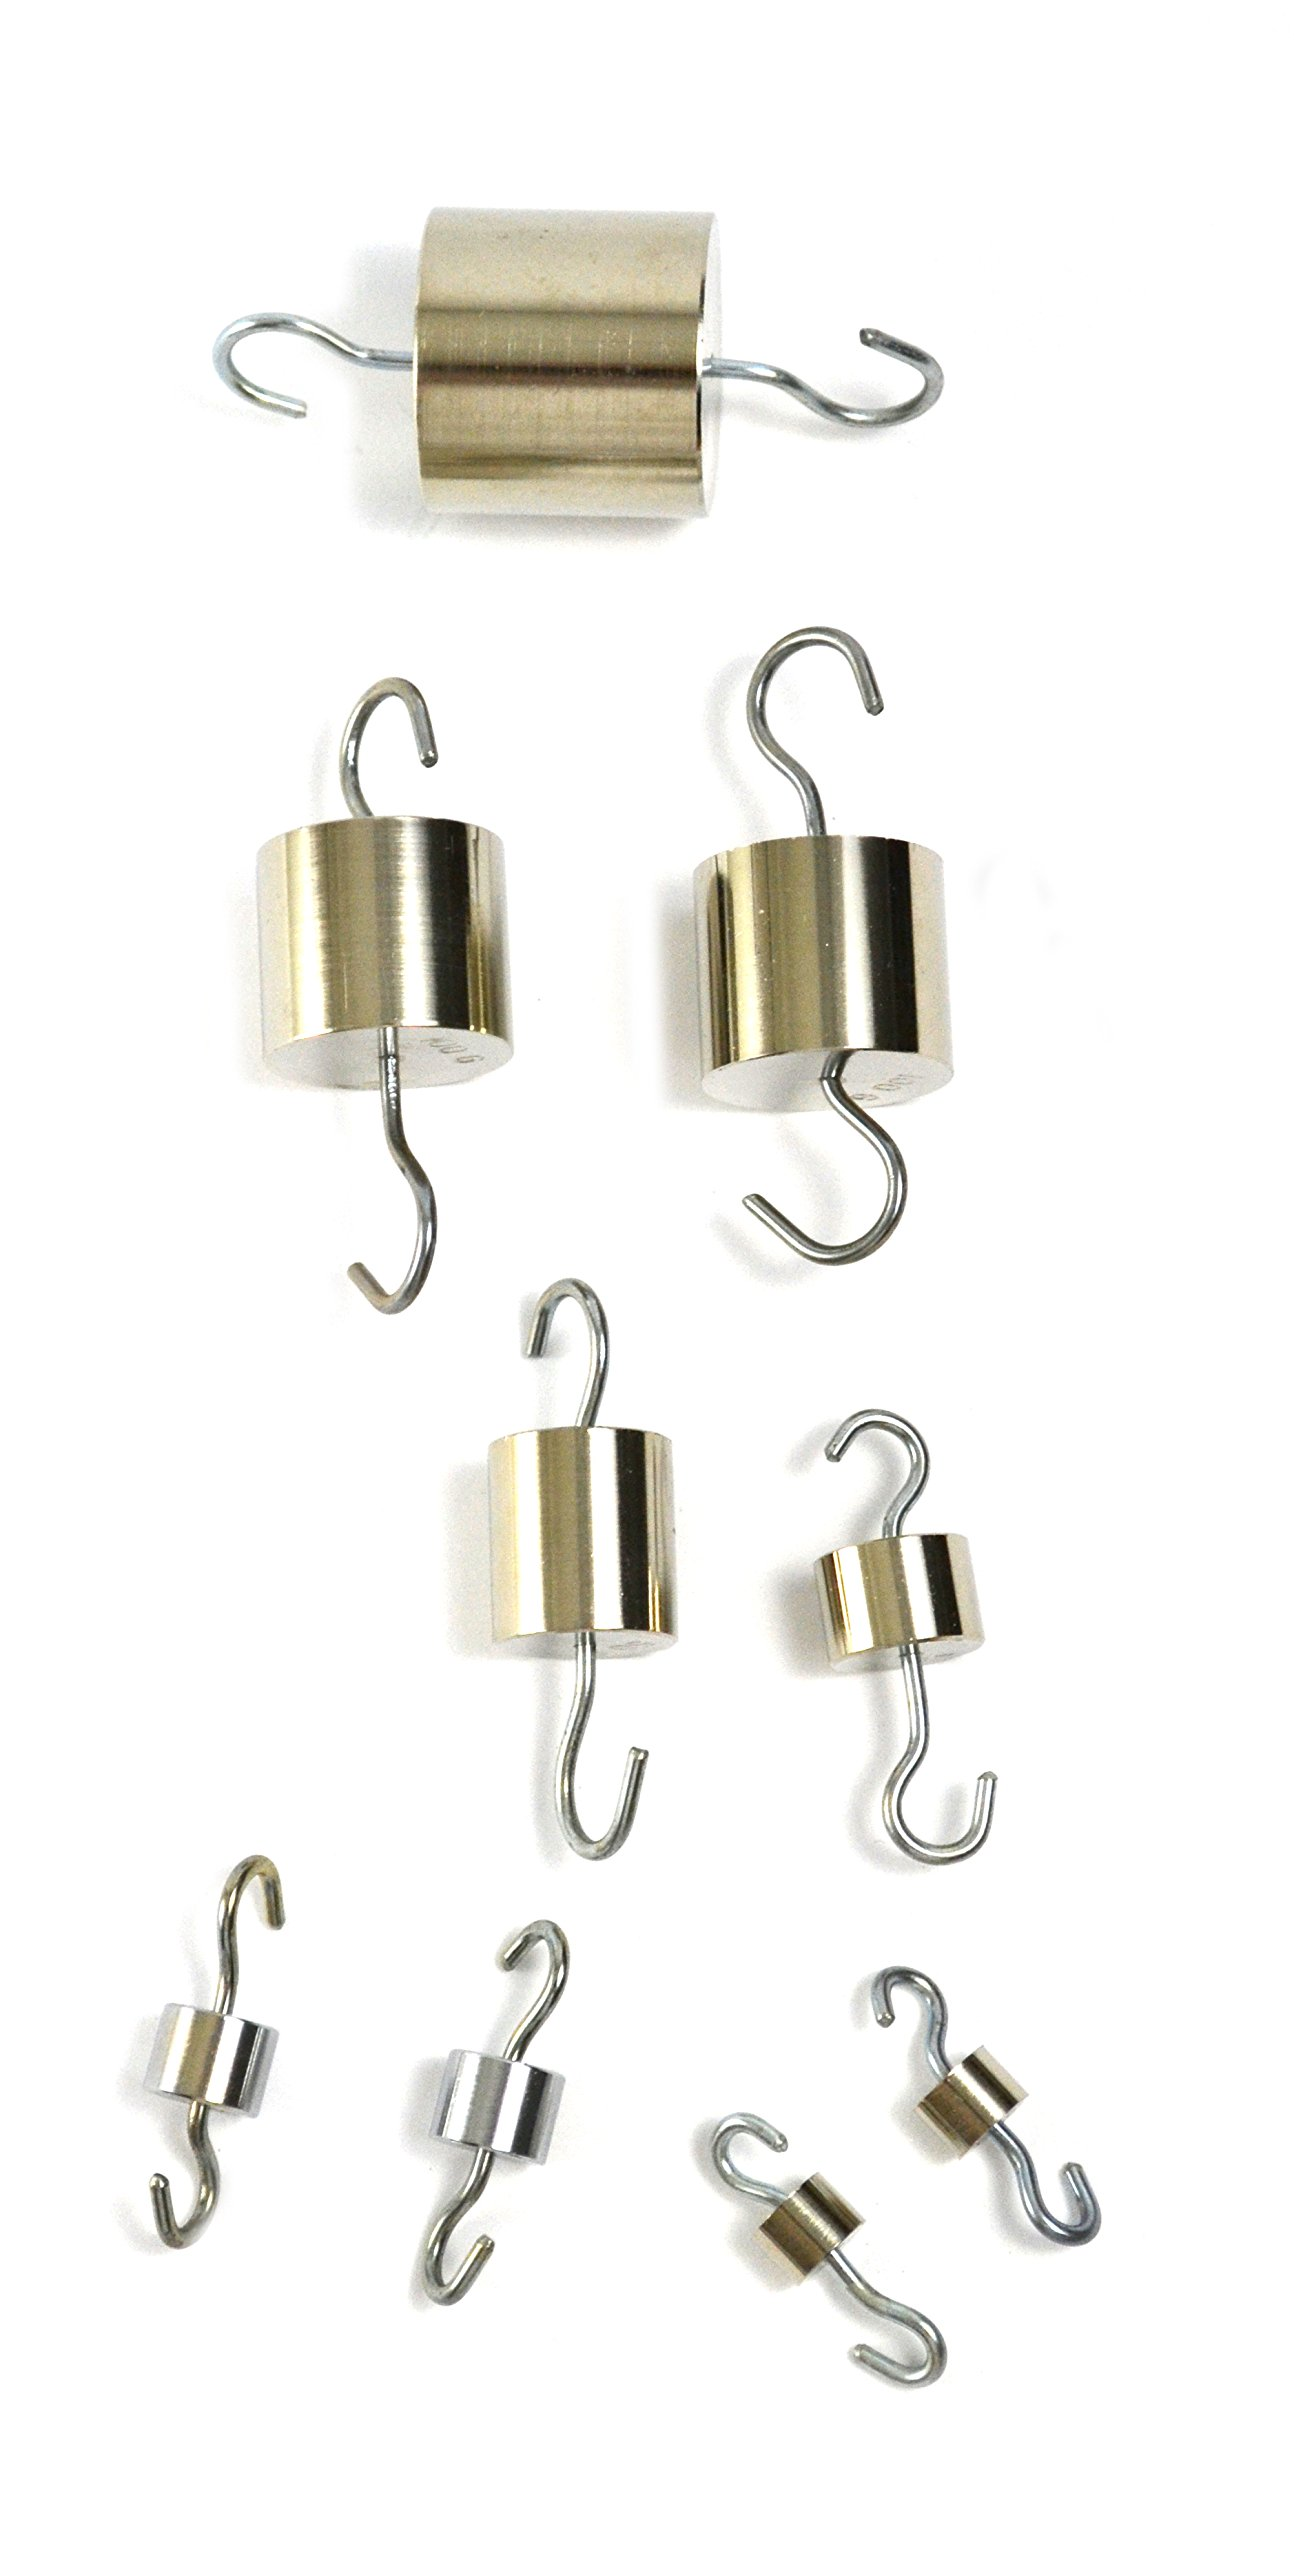 Eisco Labs Brass Cylinder Hooked Weights - Set of 9 total weight 500 grams